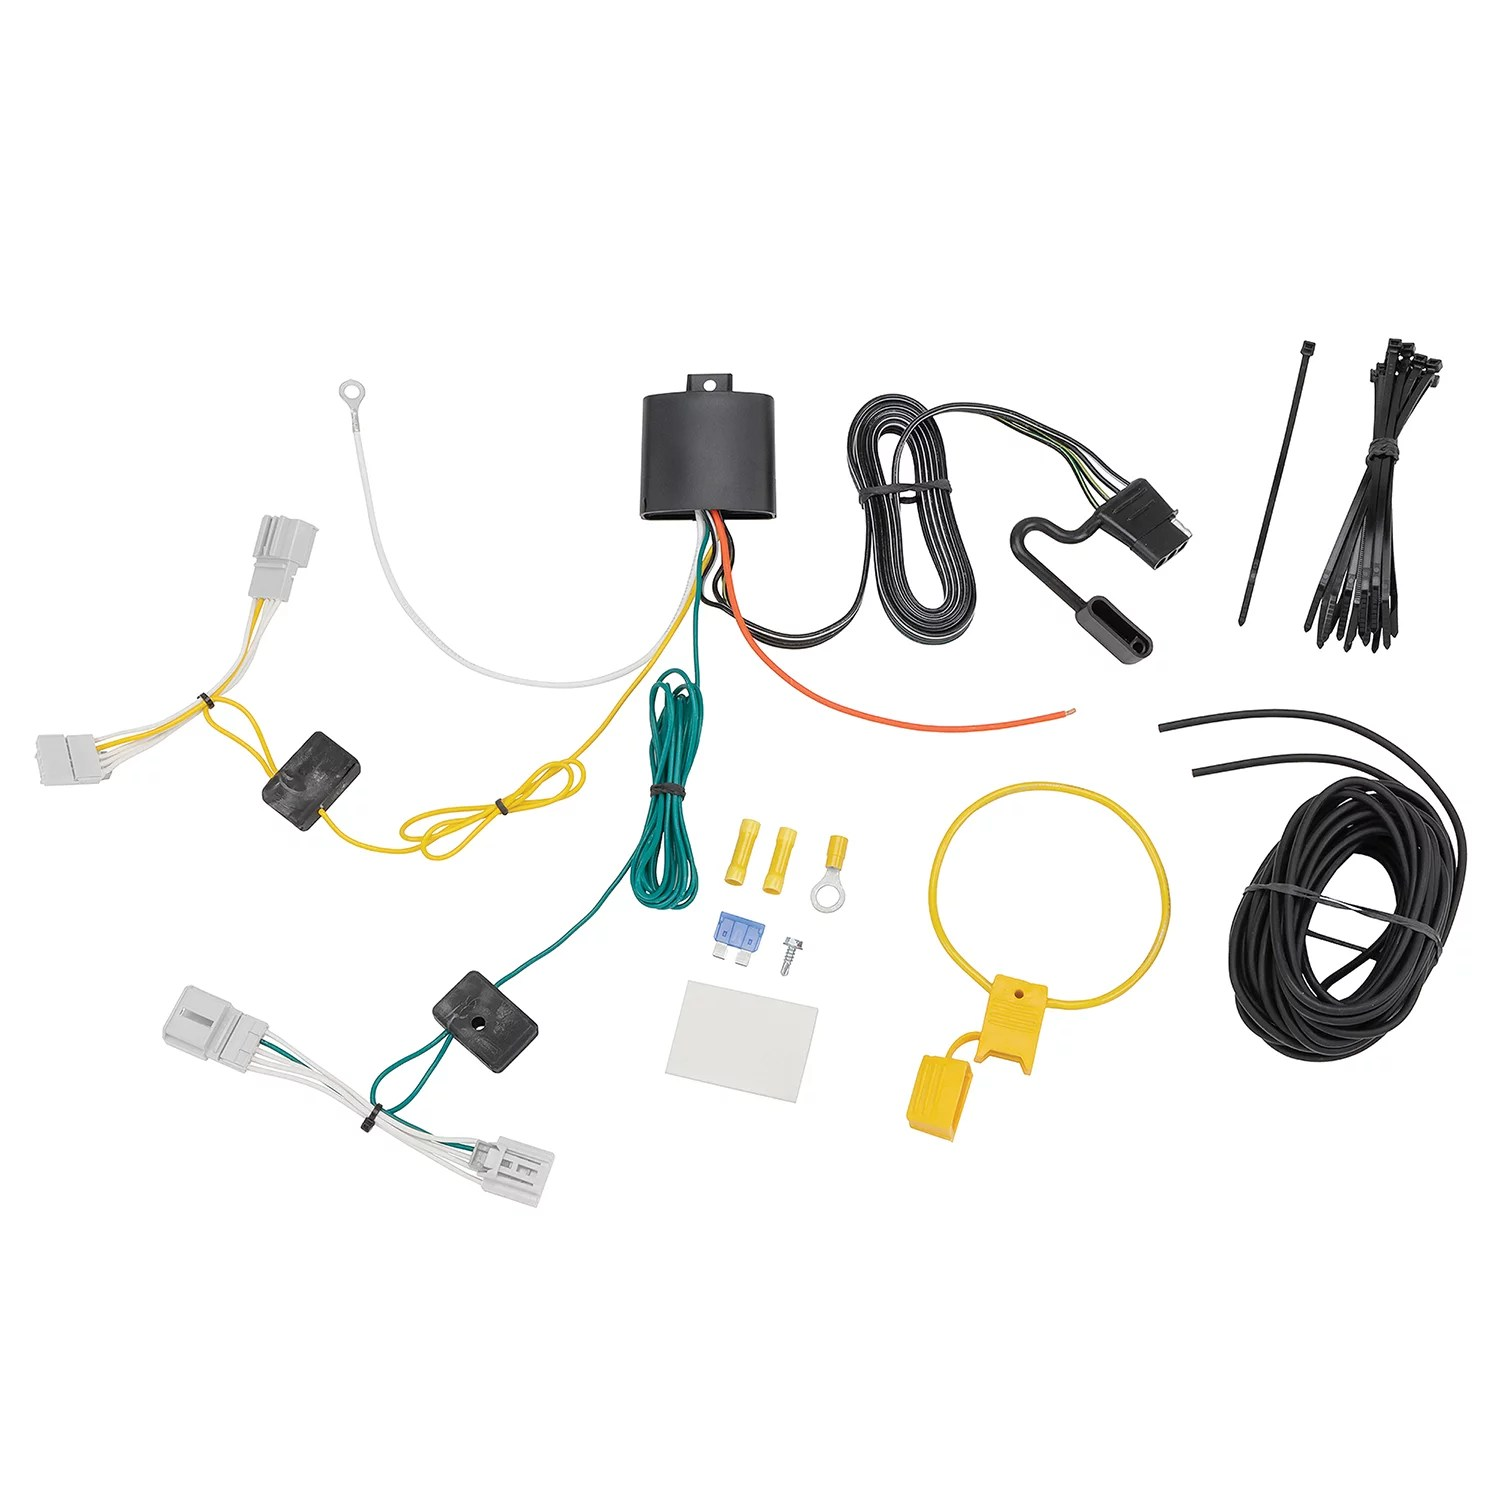 tekonsha 118775 trailer wiring connector t one t one connector upgraded modulite vehicle wiring harness with 4 pole trailer connector [ 1500 x 1500 Pixel ]